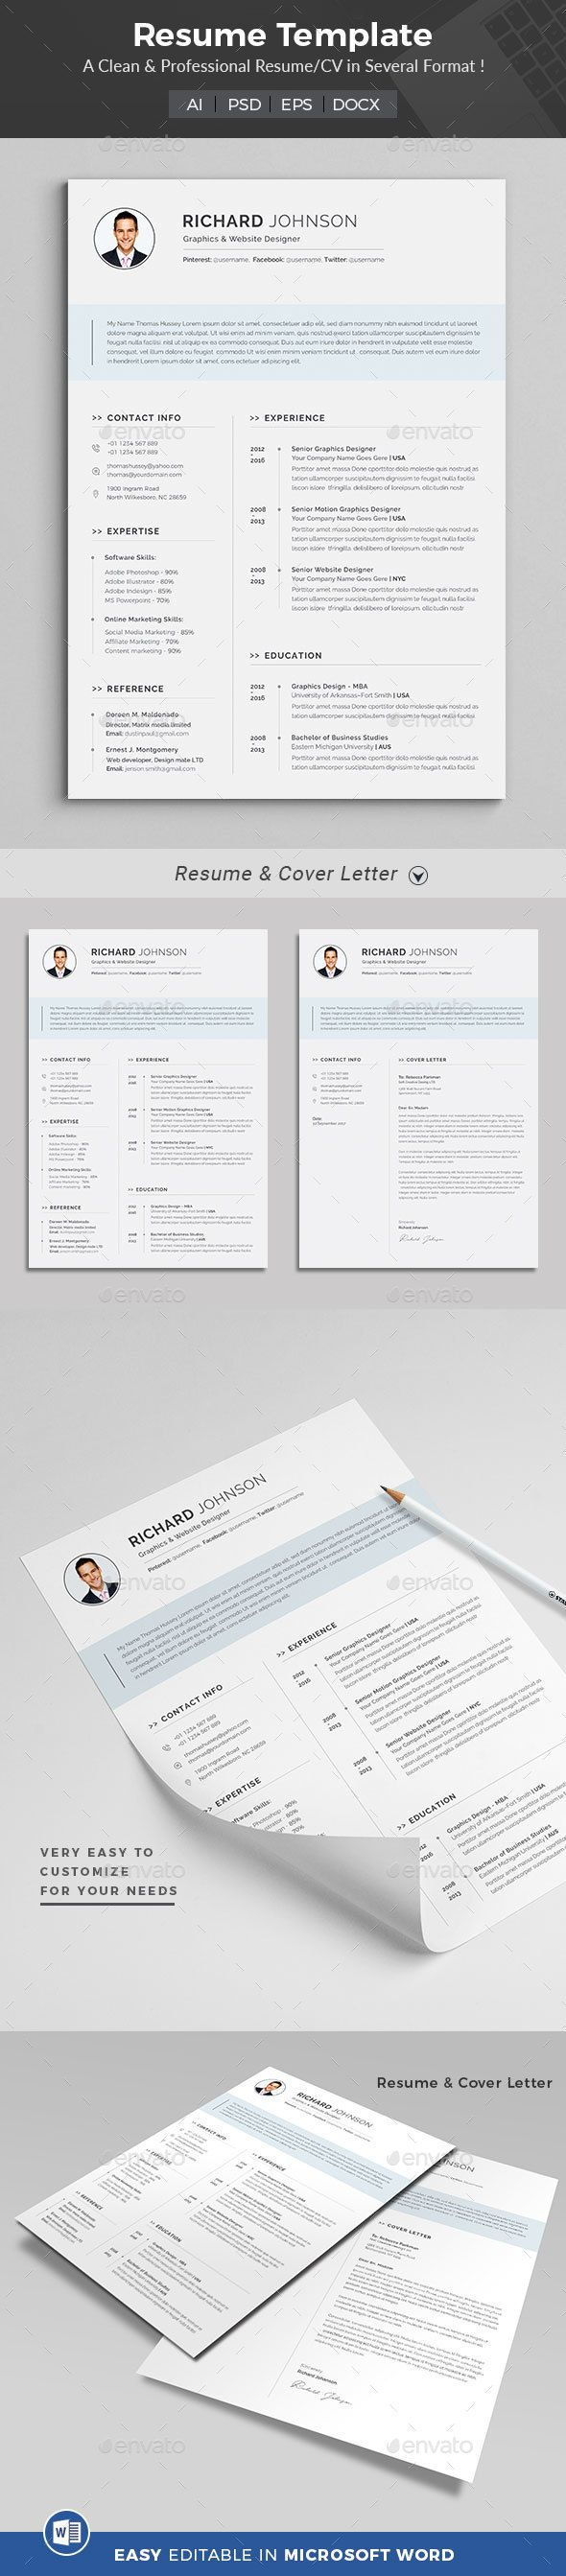 How To Make A Resume With Word Extraordinary Resume Word Template For Who Those Don'T Have Time To Create A .